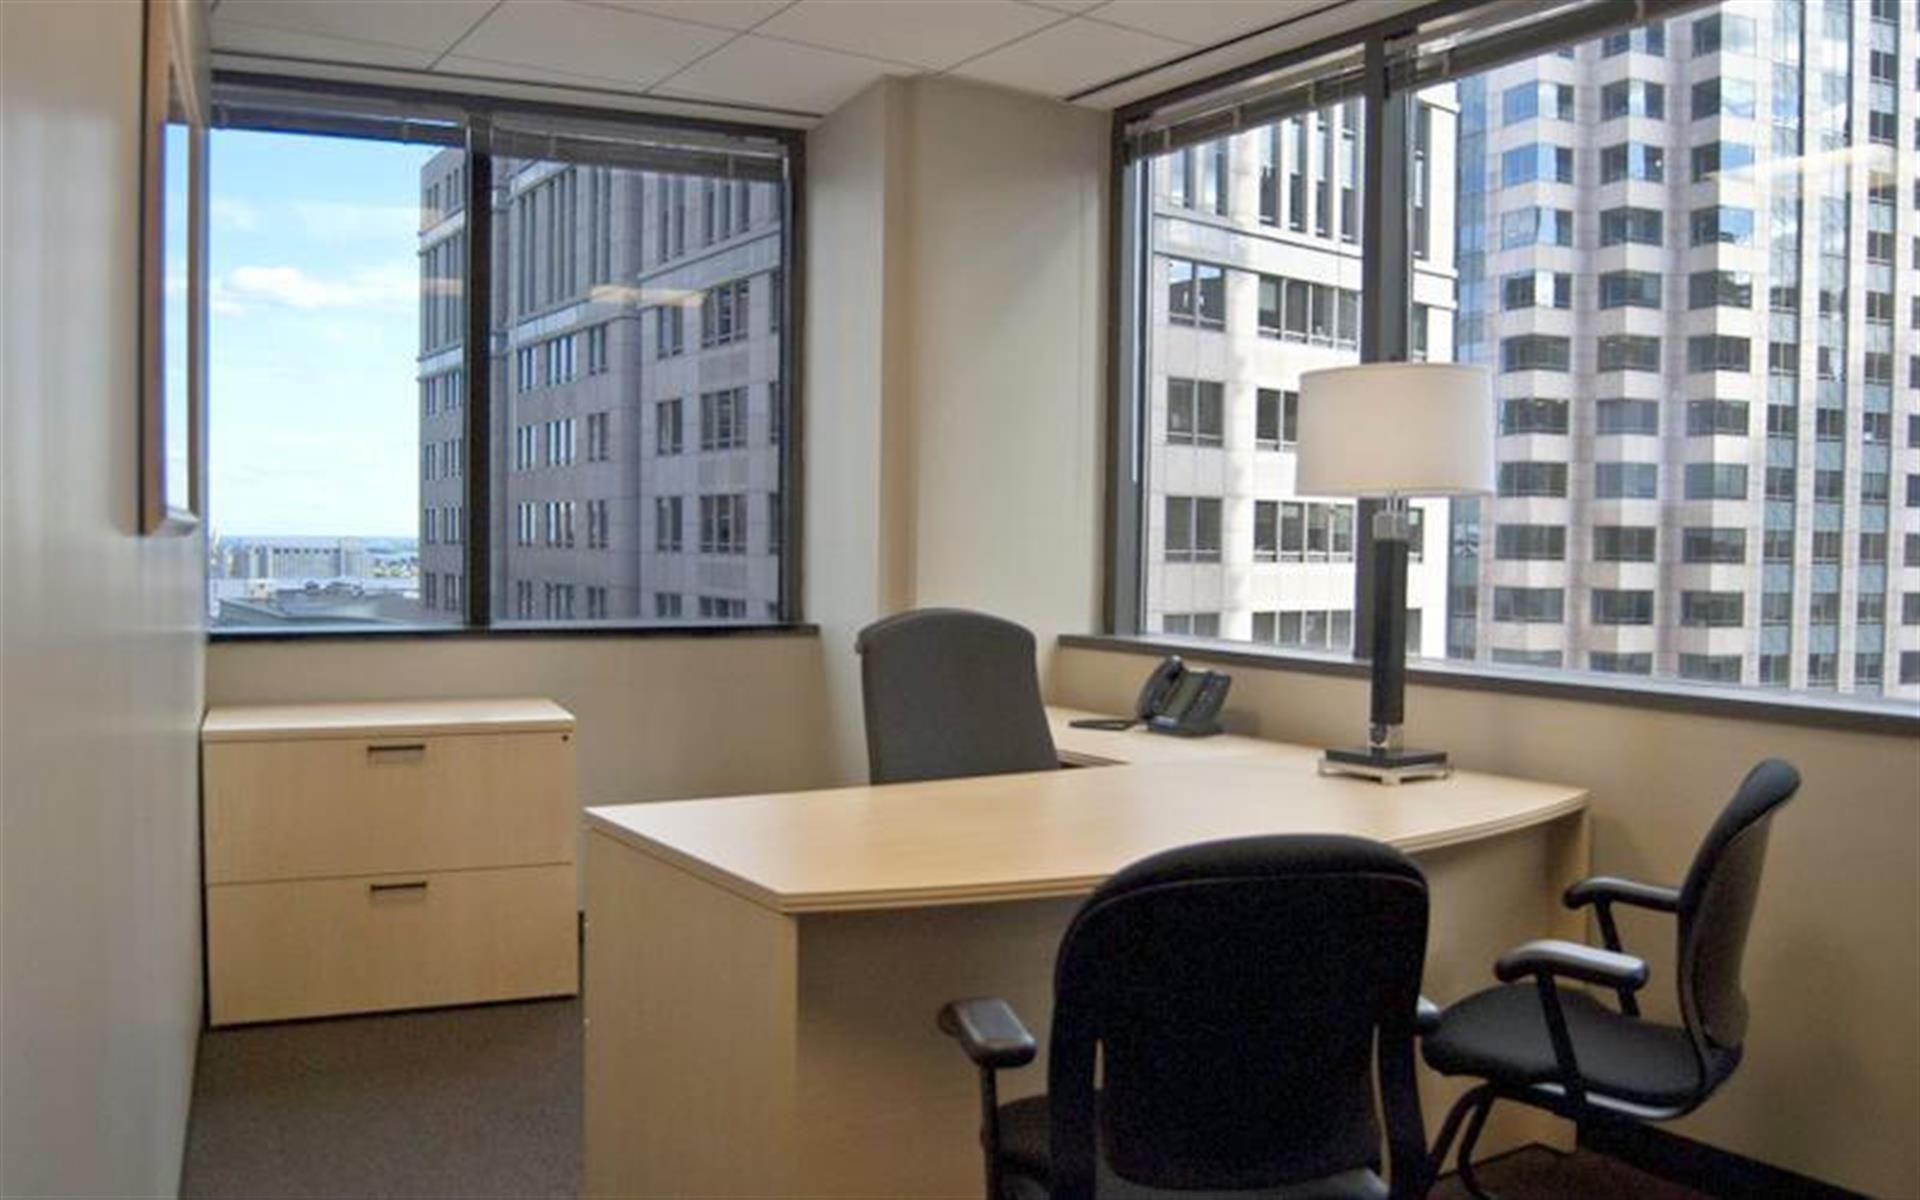 Intelligent Office - Boston - Monthly Team Office for 3